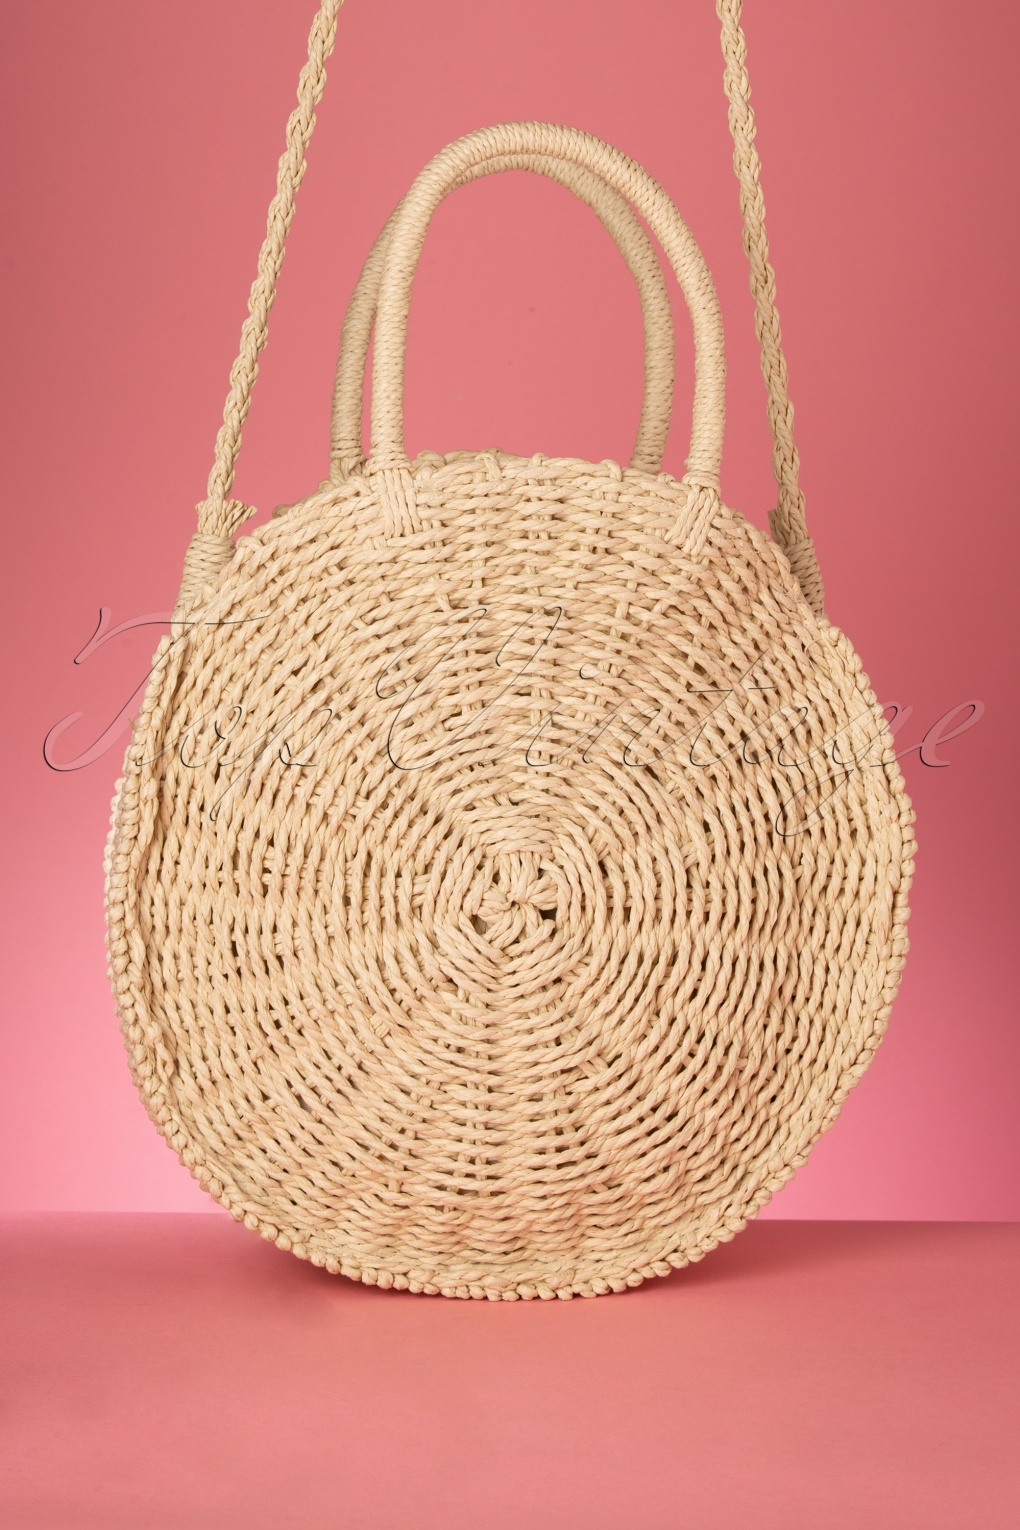 Vintage & Retro Handbags, Purses, Wallets, Bags 50s Frederique Round Woven Bag in Natural �37.93 AT vintagedancer.com